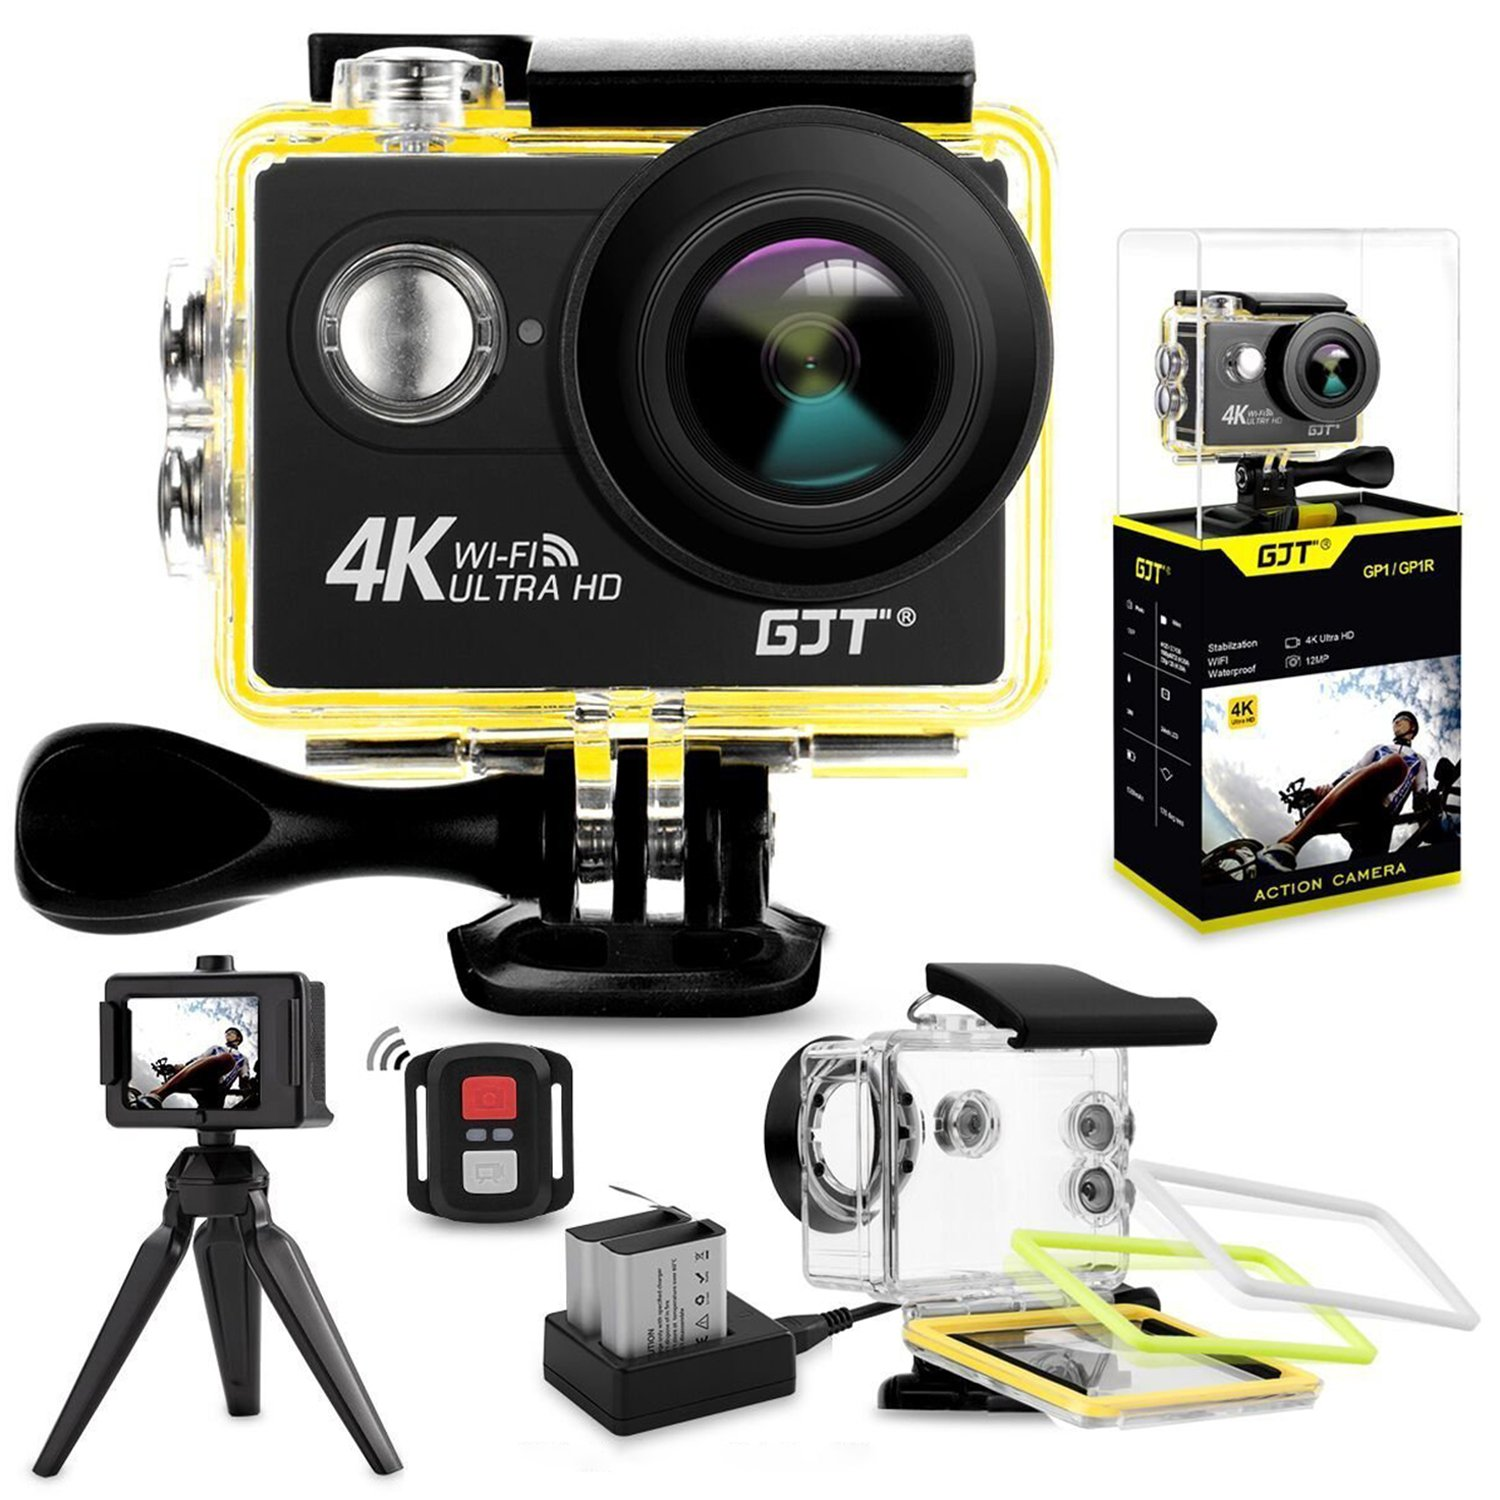 Gjt Gp1r Action Camera 4k Sports Wifi 12mp Gopro Sportcam Non Kamera Ultra Hd 30m Waterproof Dv Camcorder 2 Inch Lcd Screen 170 Degree Wide Angle Lens